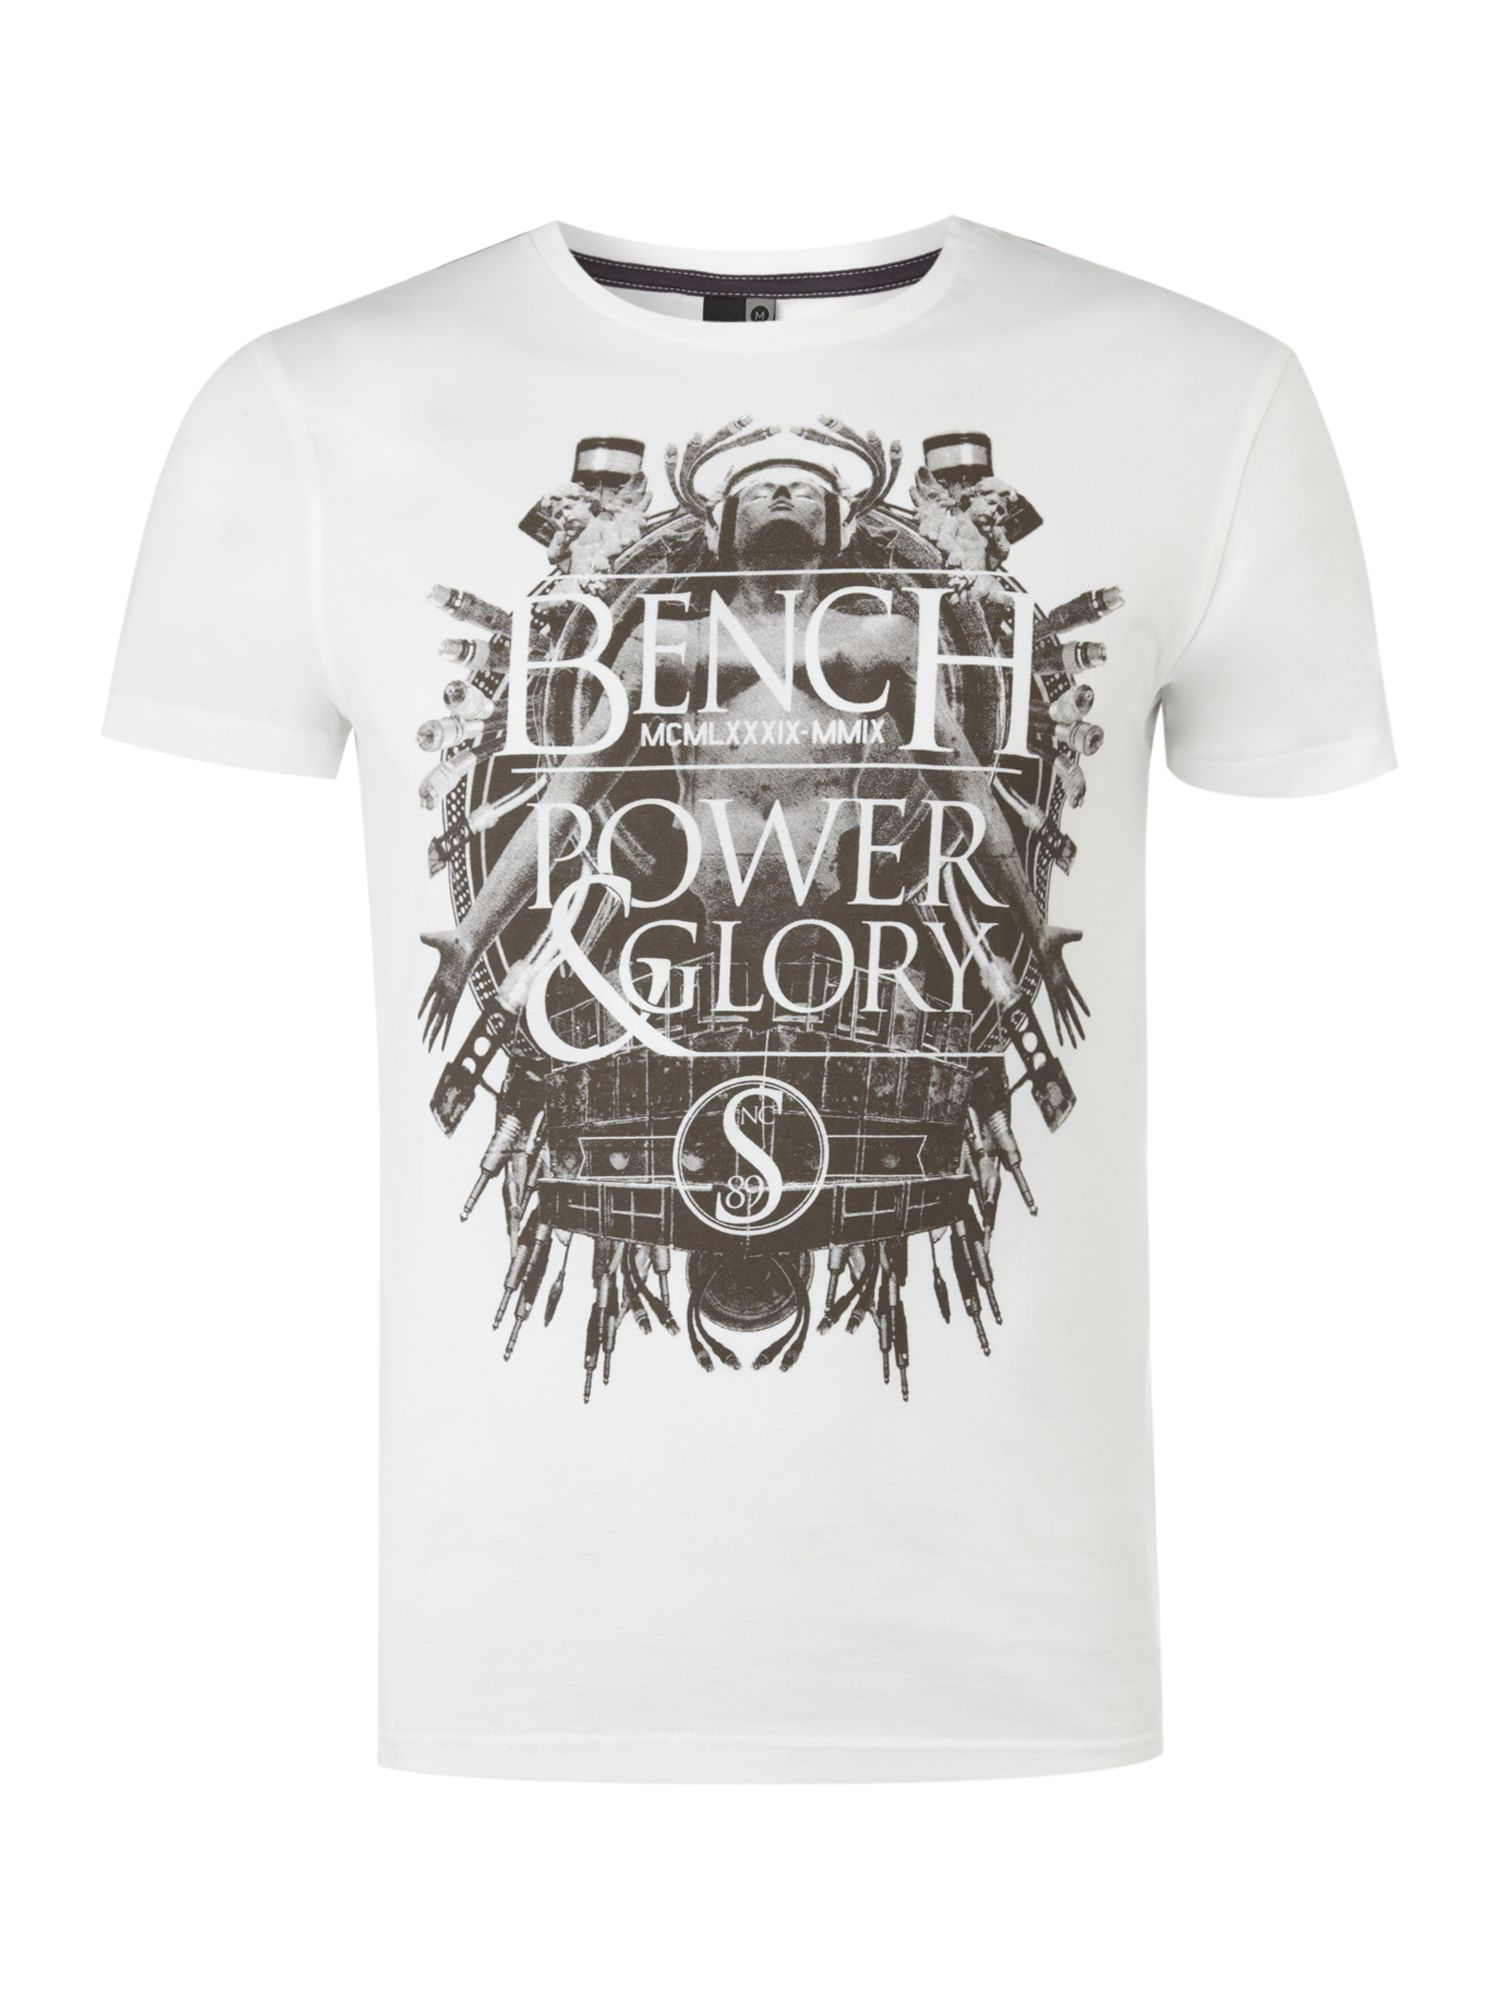 Mens Bench Audio glory printed T-shirt,